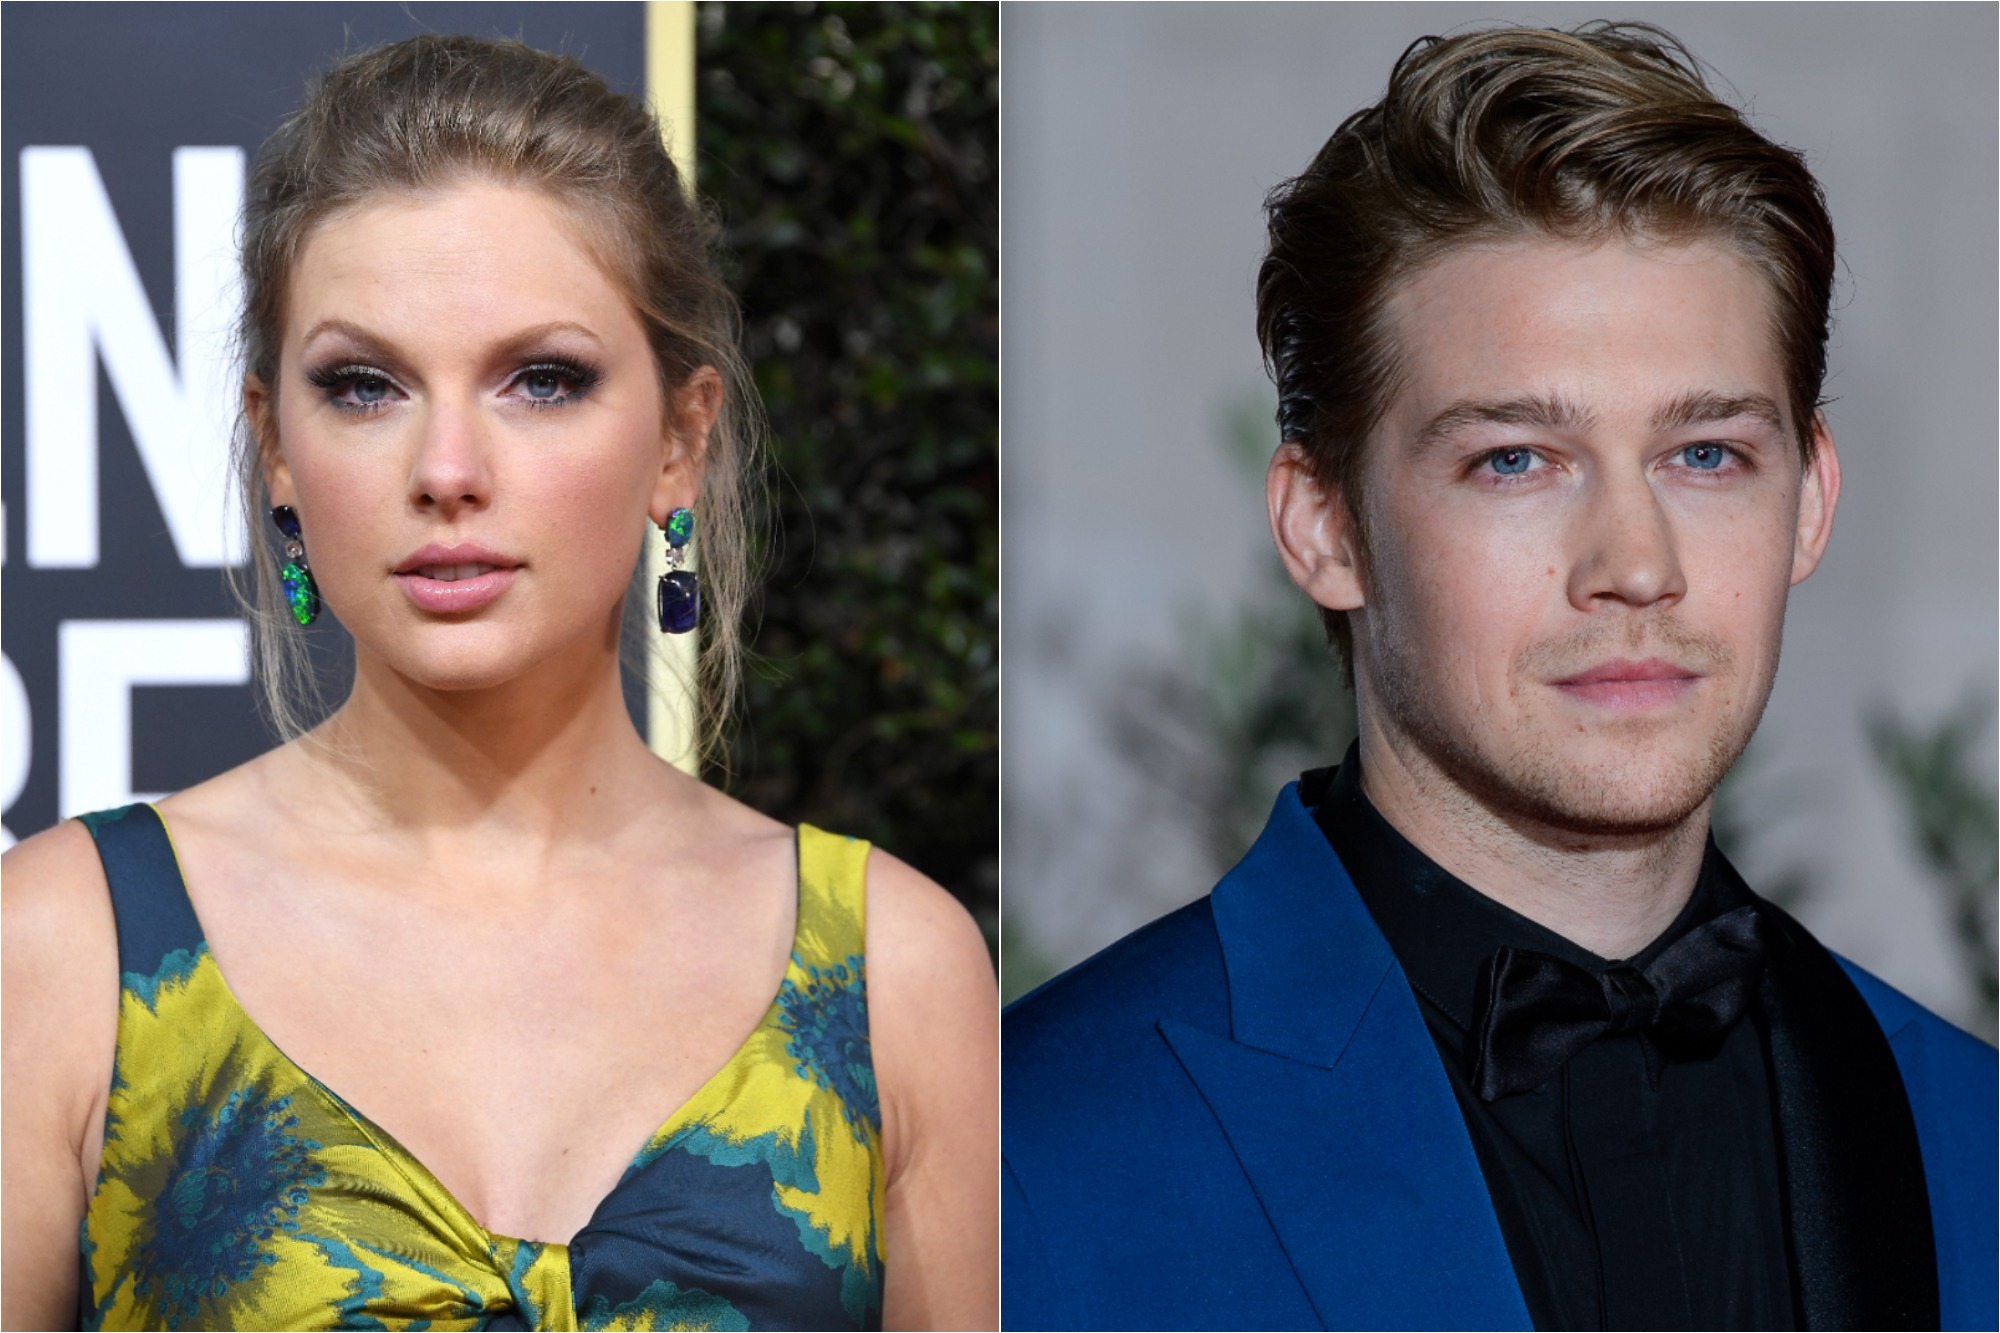 (R) Taylor Swift at the 77th Annual Golden Globe Awards on January 05, 2020 / (L) Joe Alwyn at the EE British Academy Film Awards 2020 After Party on February 02, 2020